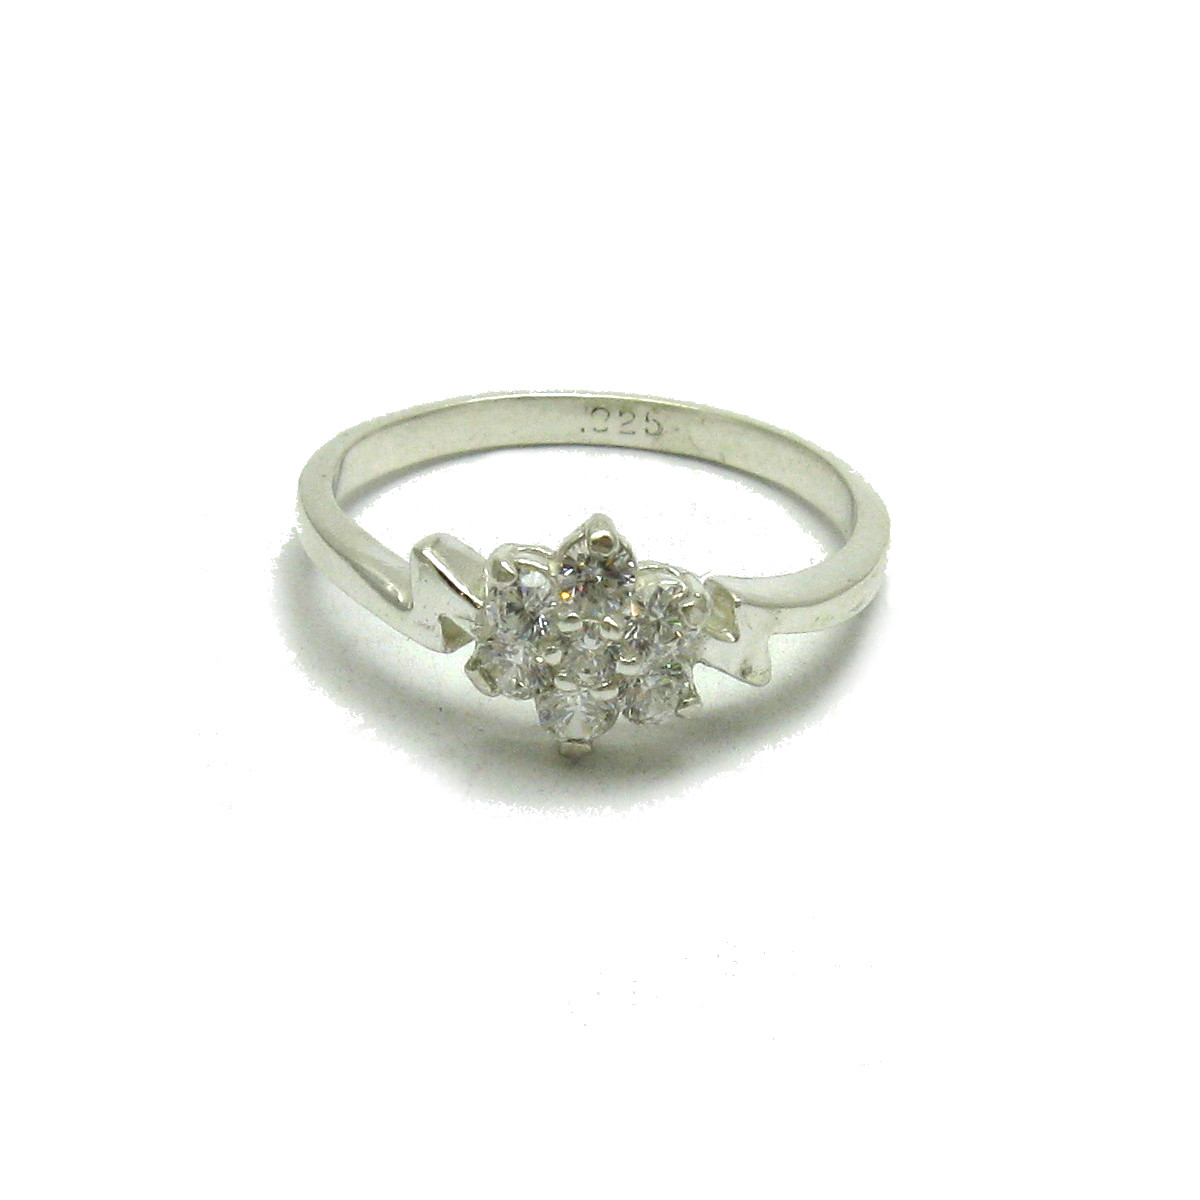 Silver ring - R001670